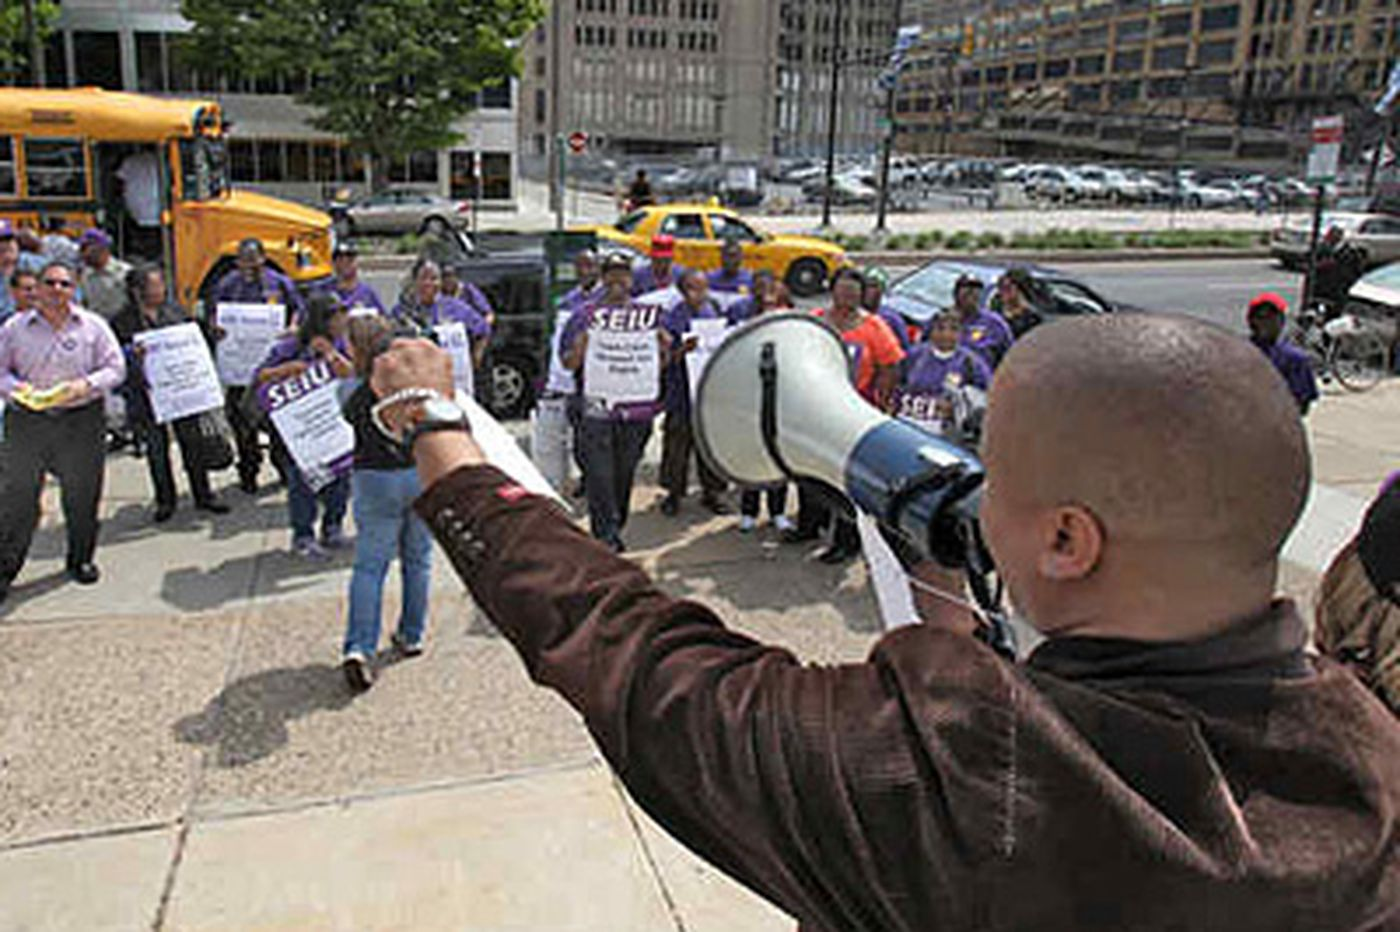 Phila. School District sends 1,400 layoff notices to blue-collar union